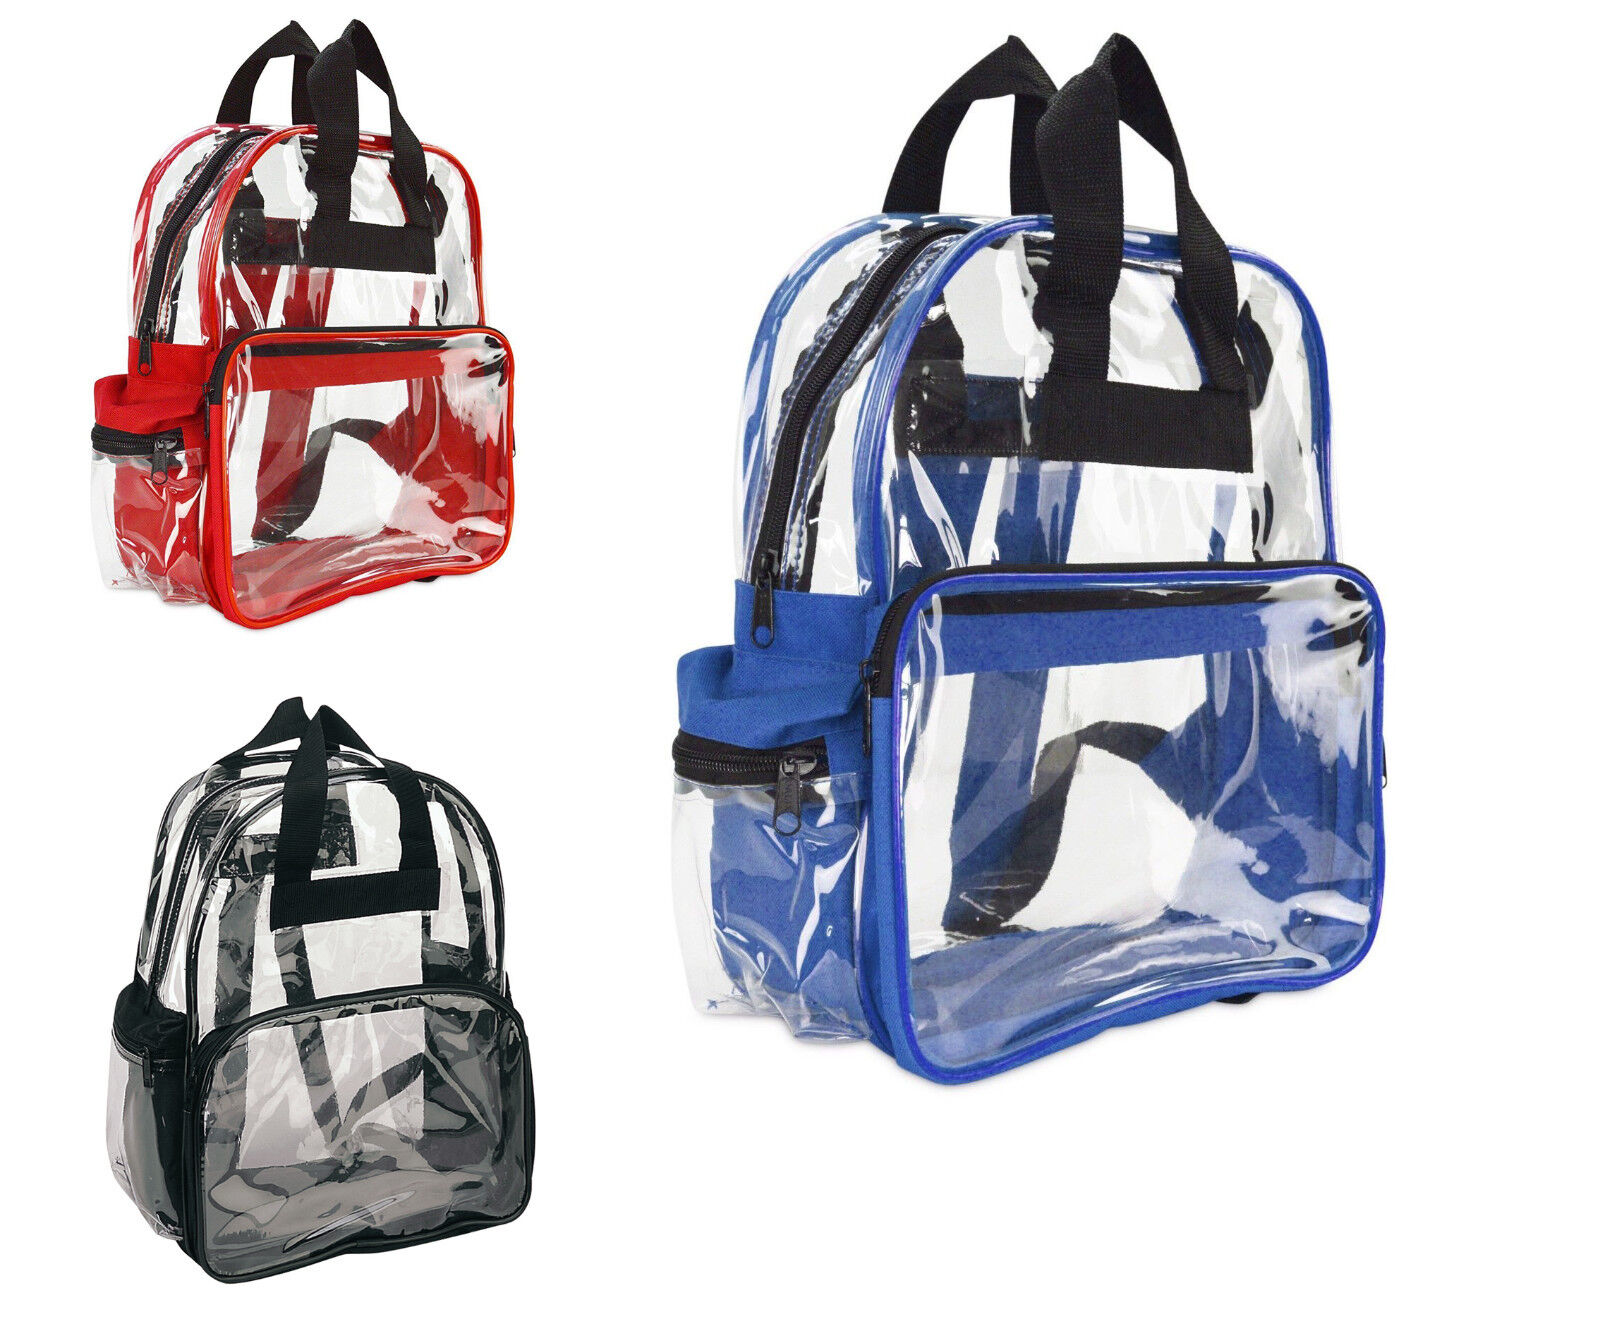 Excursions Bag Unisex Transparent School Security Clear Backpack Book Bag Red Royal